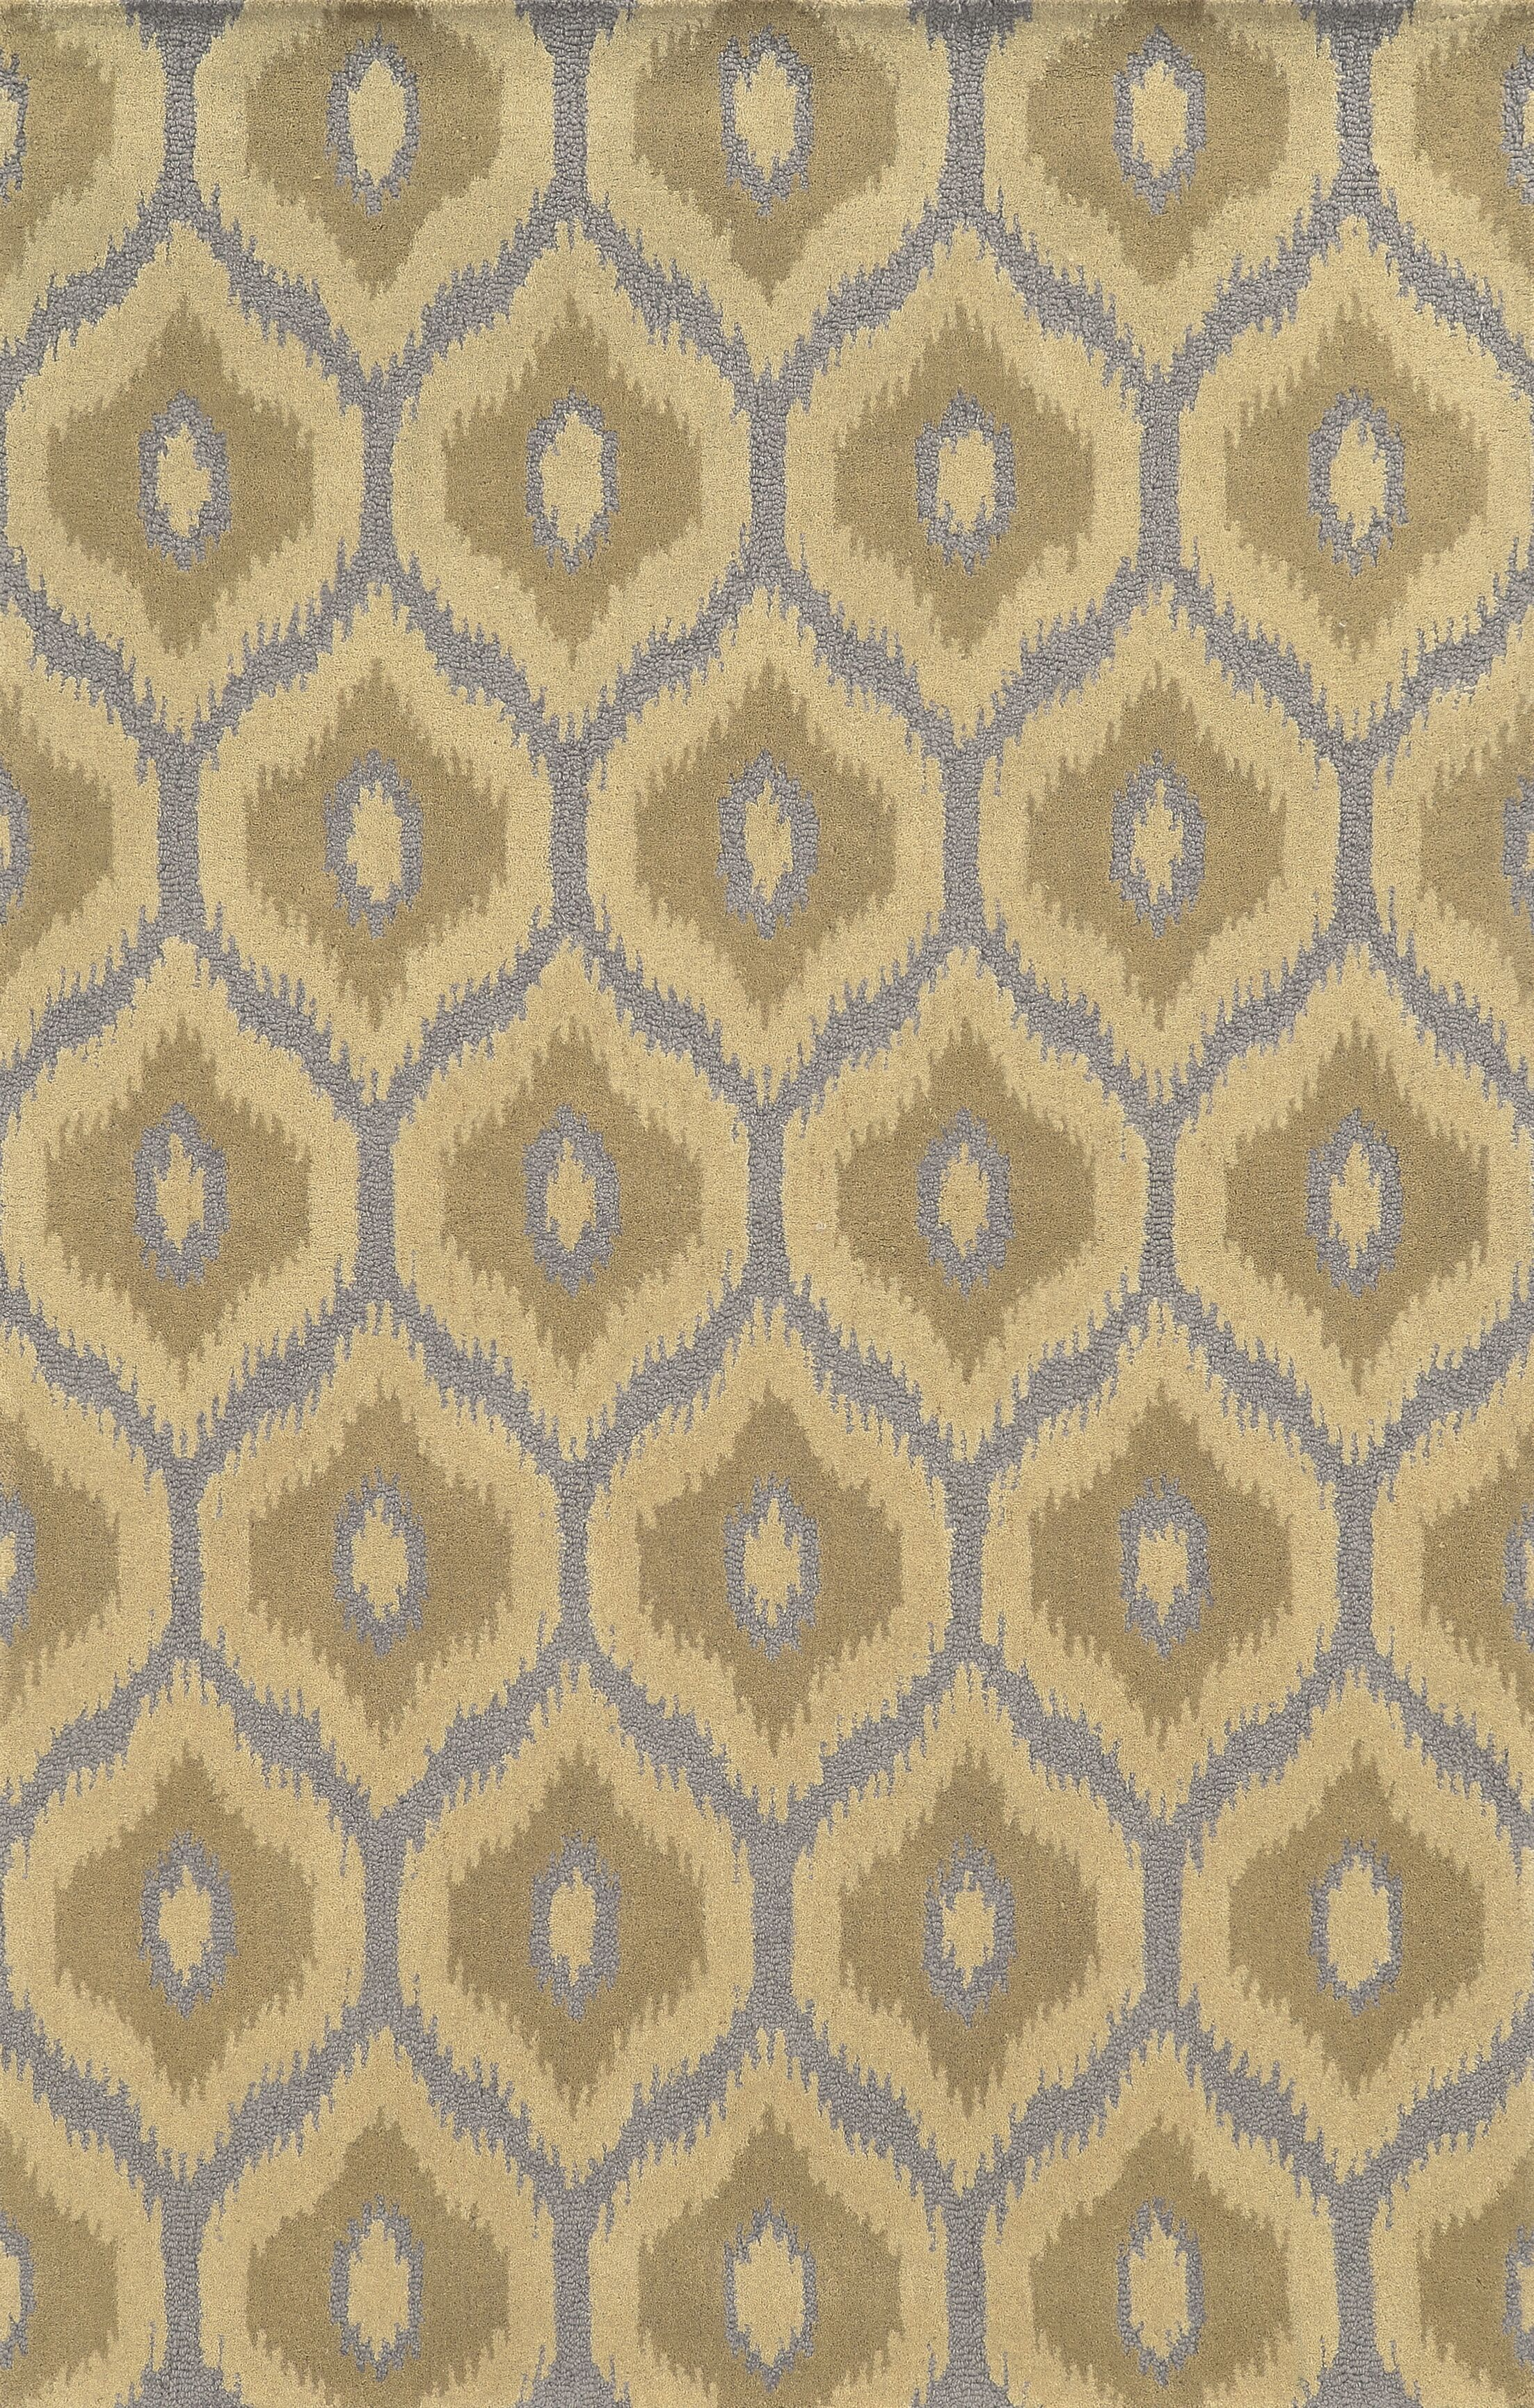 Mersa Hand-Tufted Beige Area Rug Rug Size: Rectangle 9' x 12'